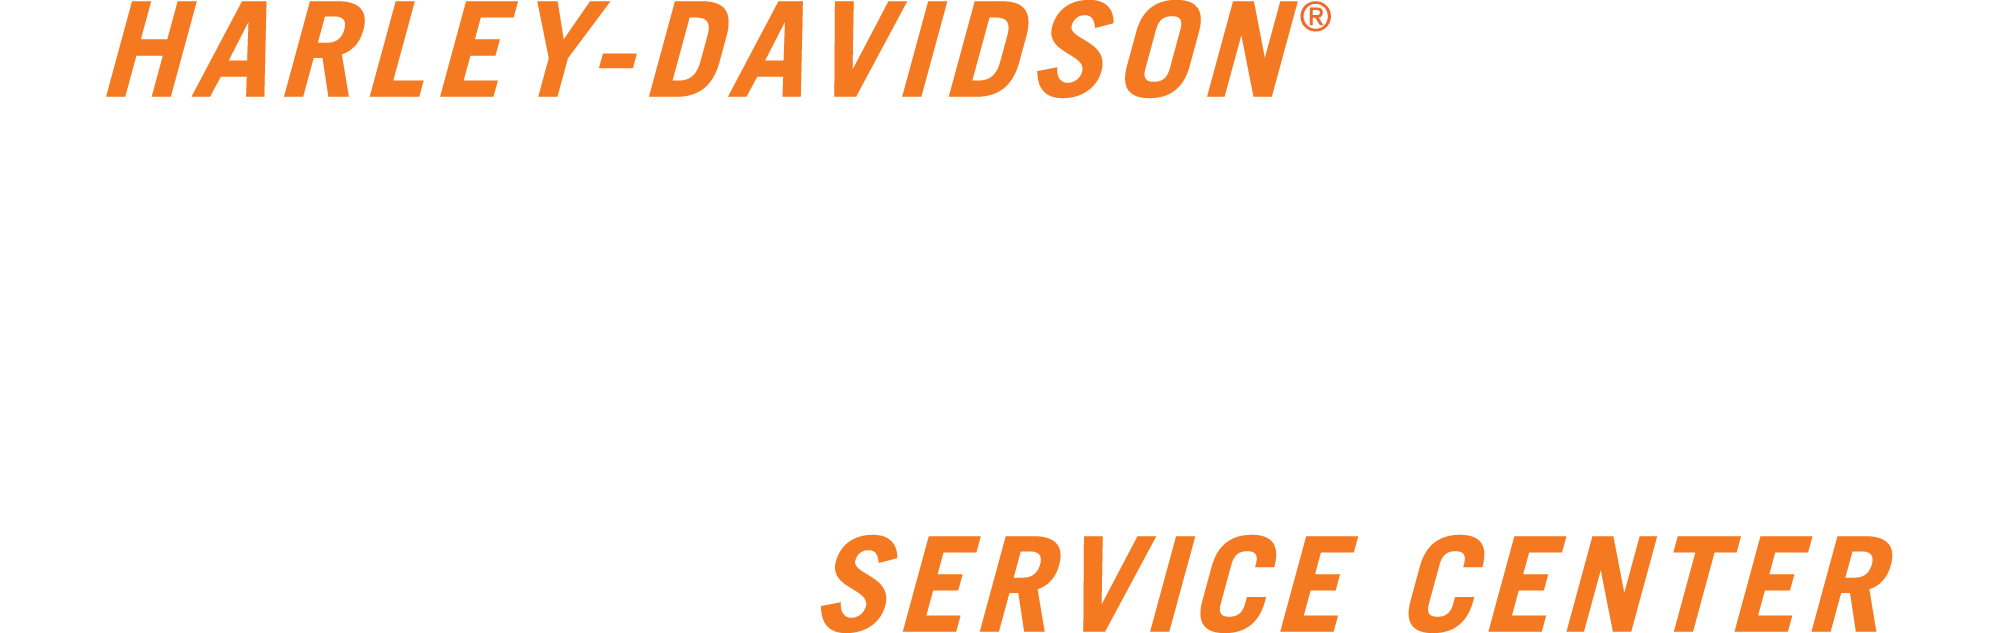 Services Harbor Town HarleyDavidson Manitowoc WI - 2018 harley davidson invoice prices